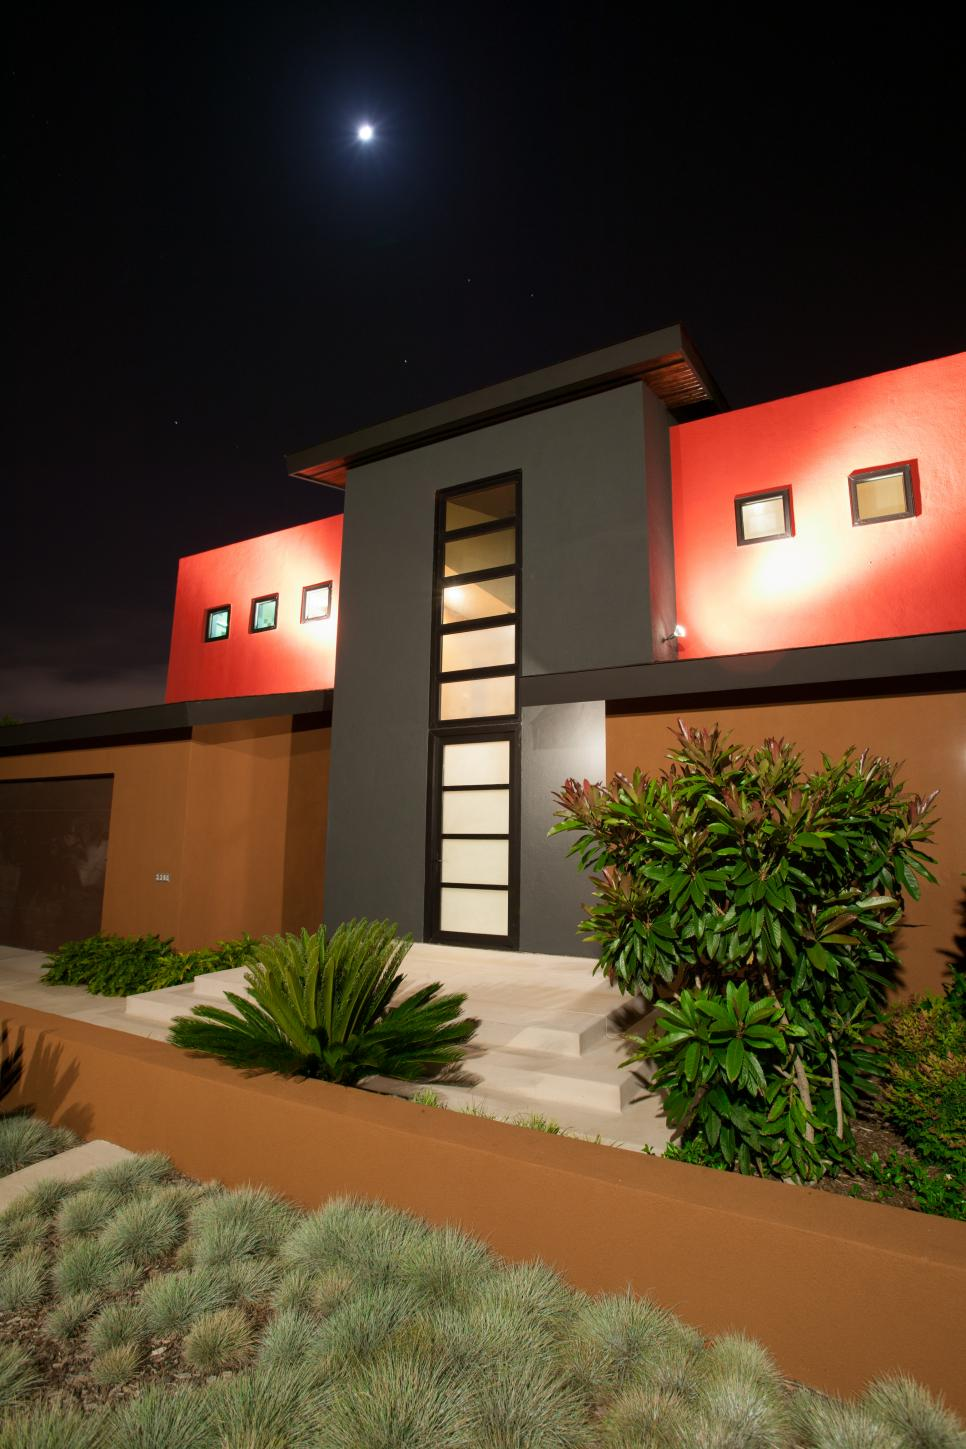 Night View of Modern Red-and-Black House Exterior